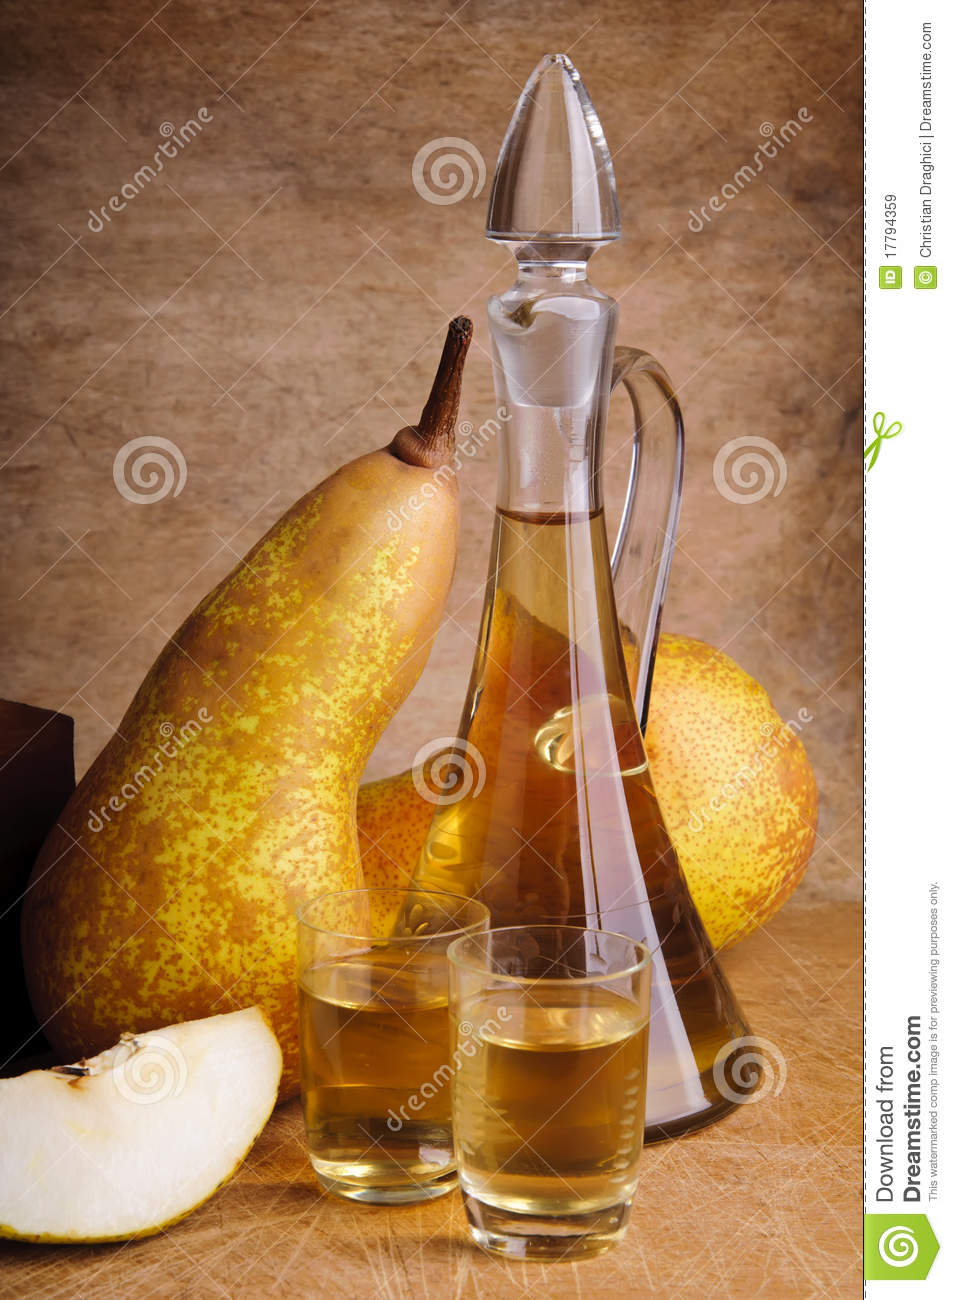 Traditional fruit brandy royalty free stock images image 17794359